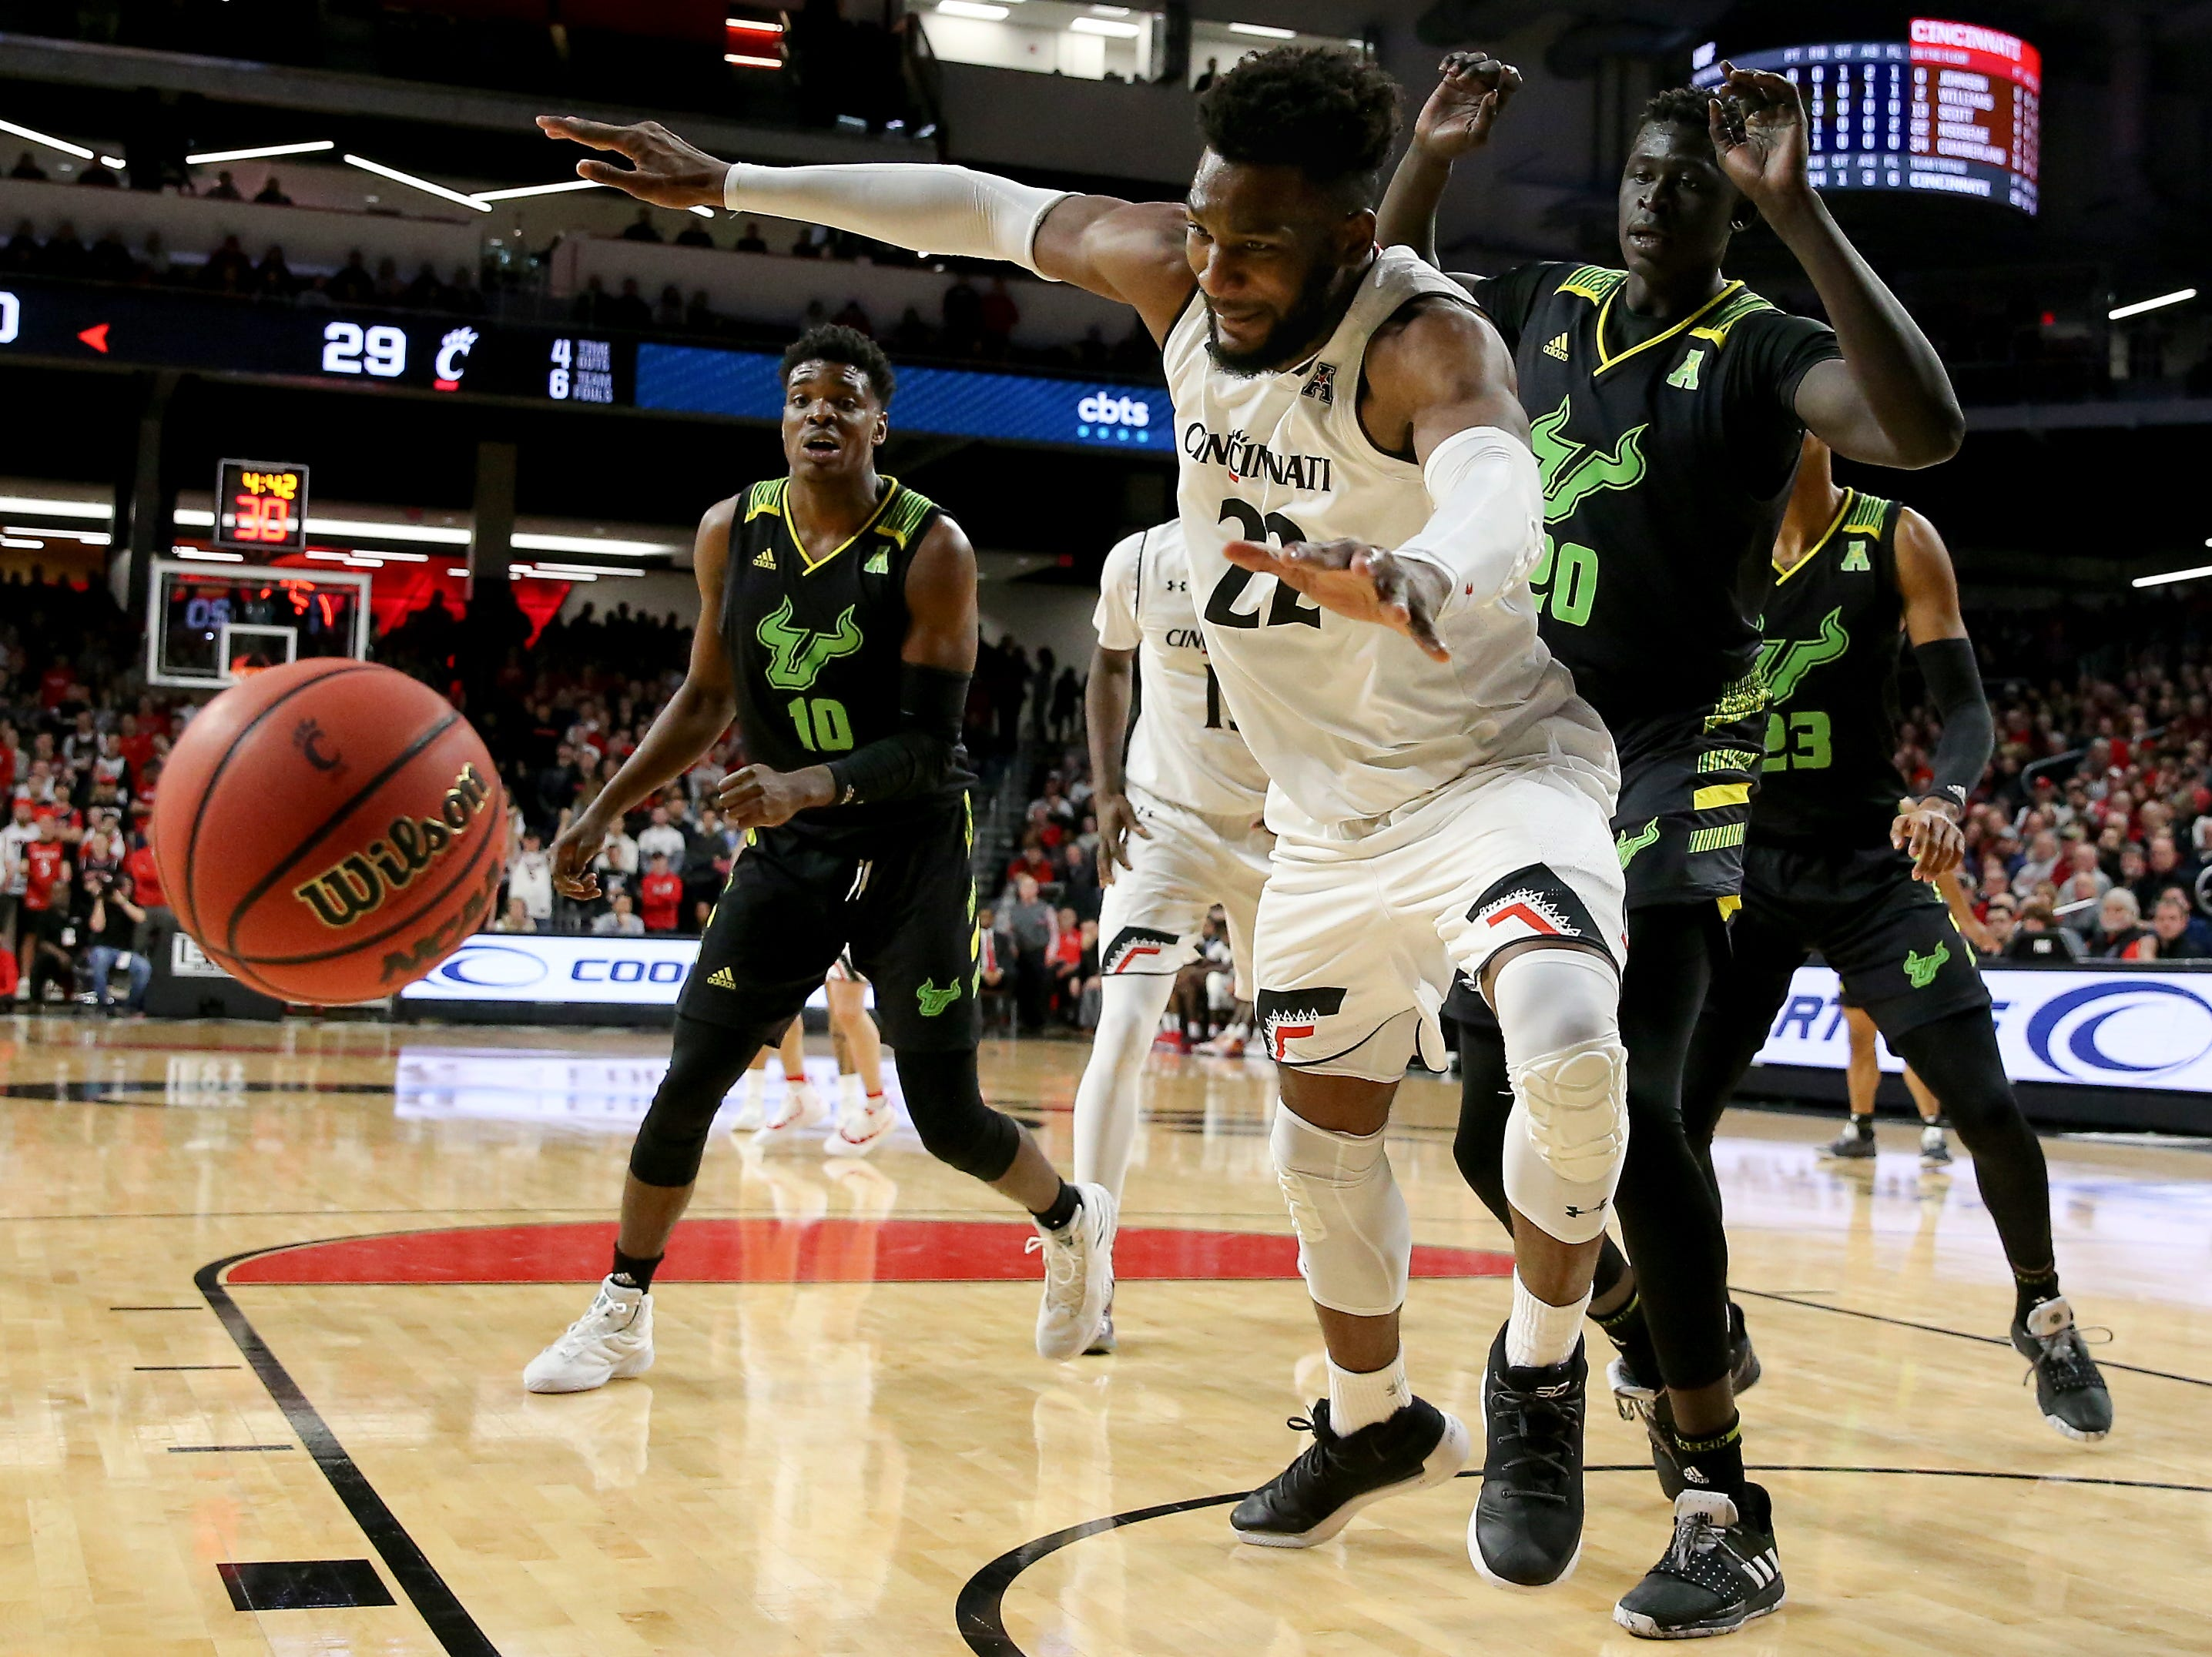 Cincinnati Bearcats forward Eliel Nsoseme (22) chases after a loose ball in the first half of an NCAA college basketball game against the South Florida Bulls, Tuesday, Jan. 15, 2019, at Fifth Third Arena in Cincinnati.